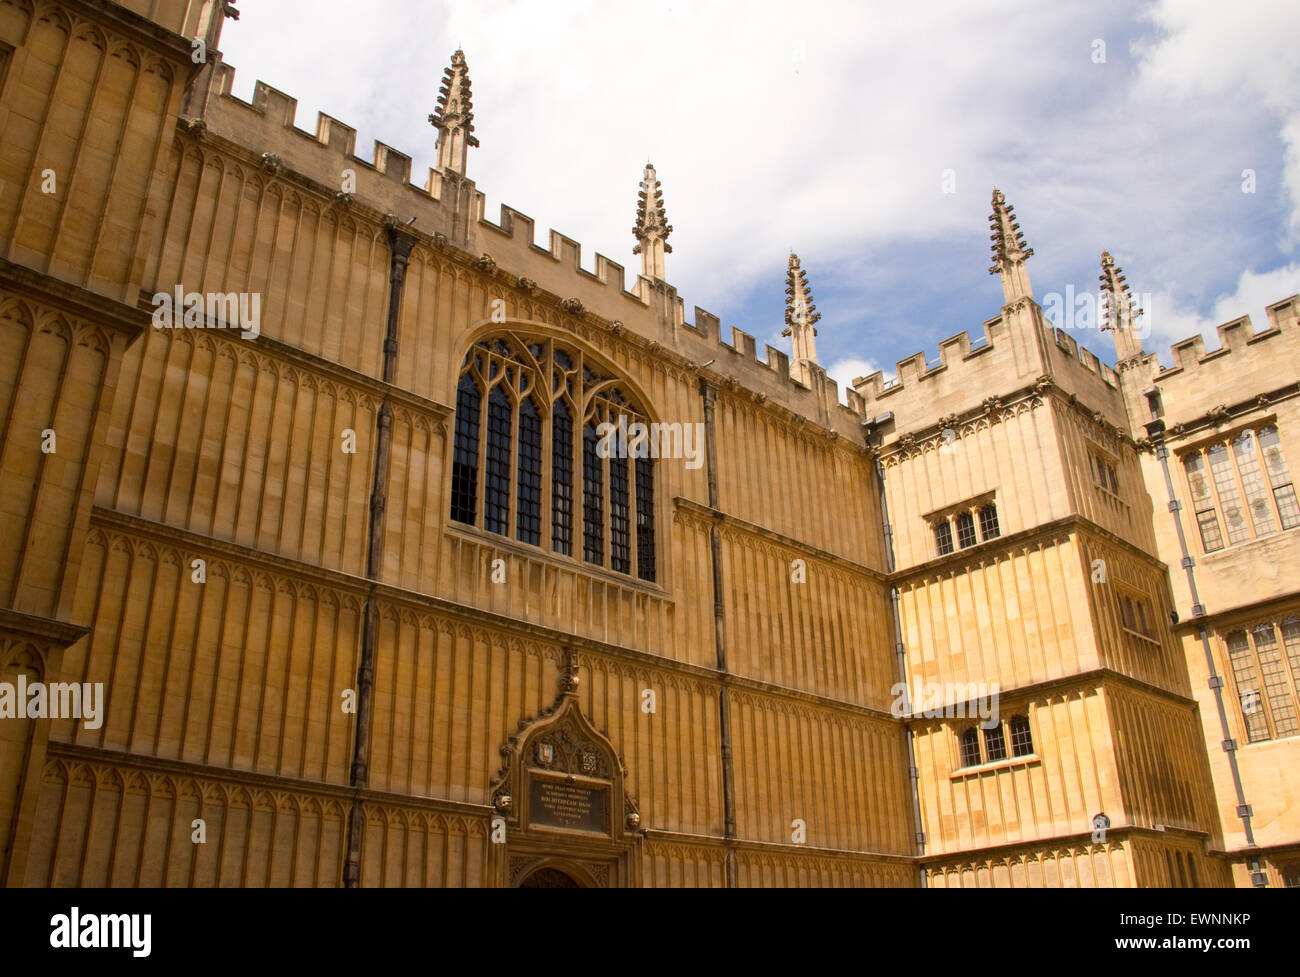 Angled view of exterior of Bodleian Library, Oxford United Kingdom - Stock Image